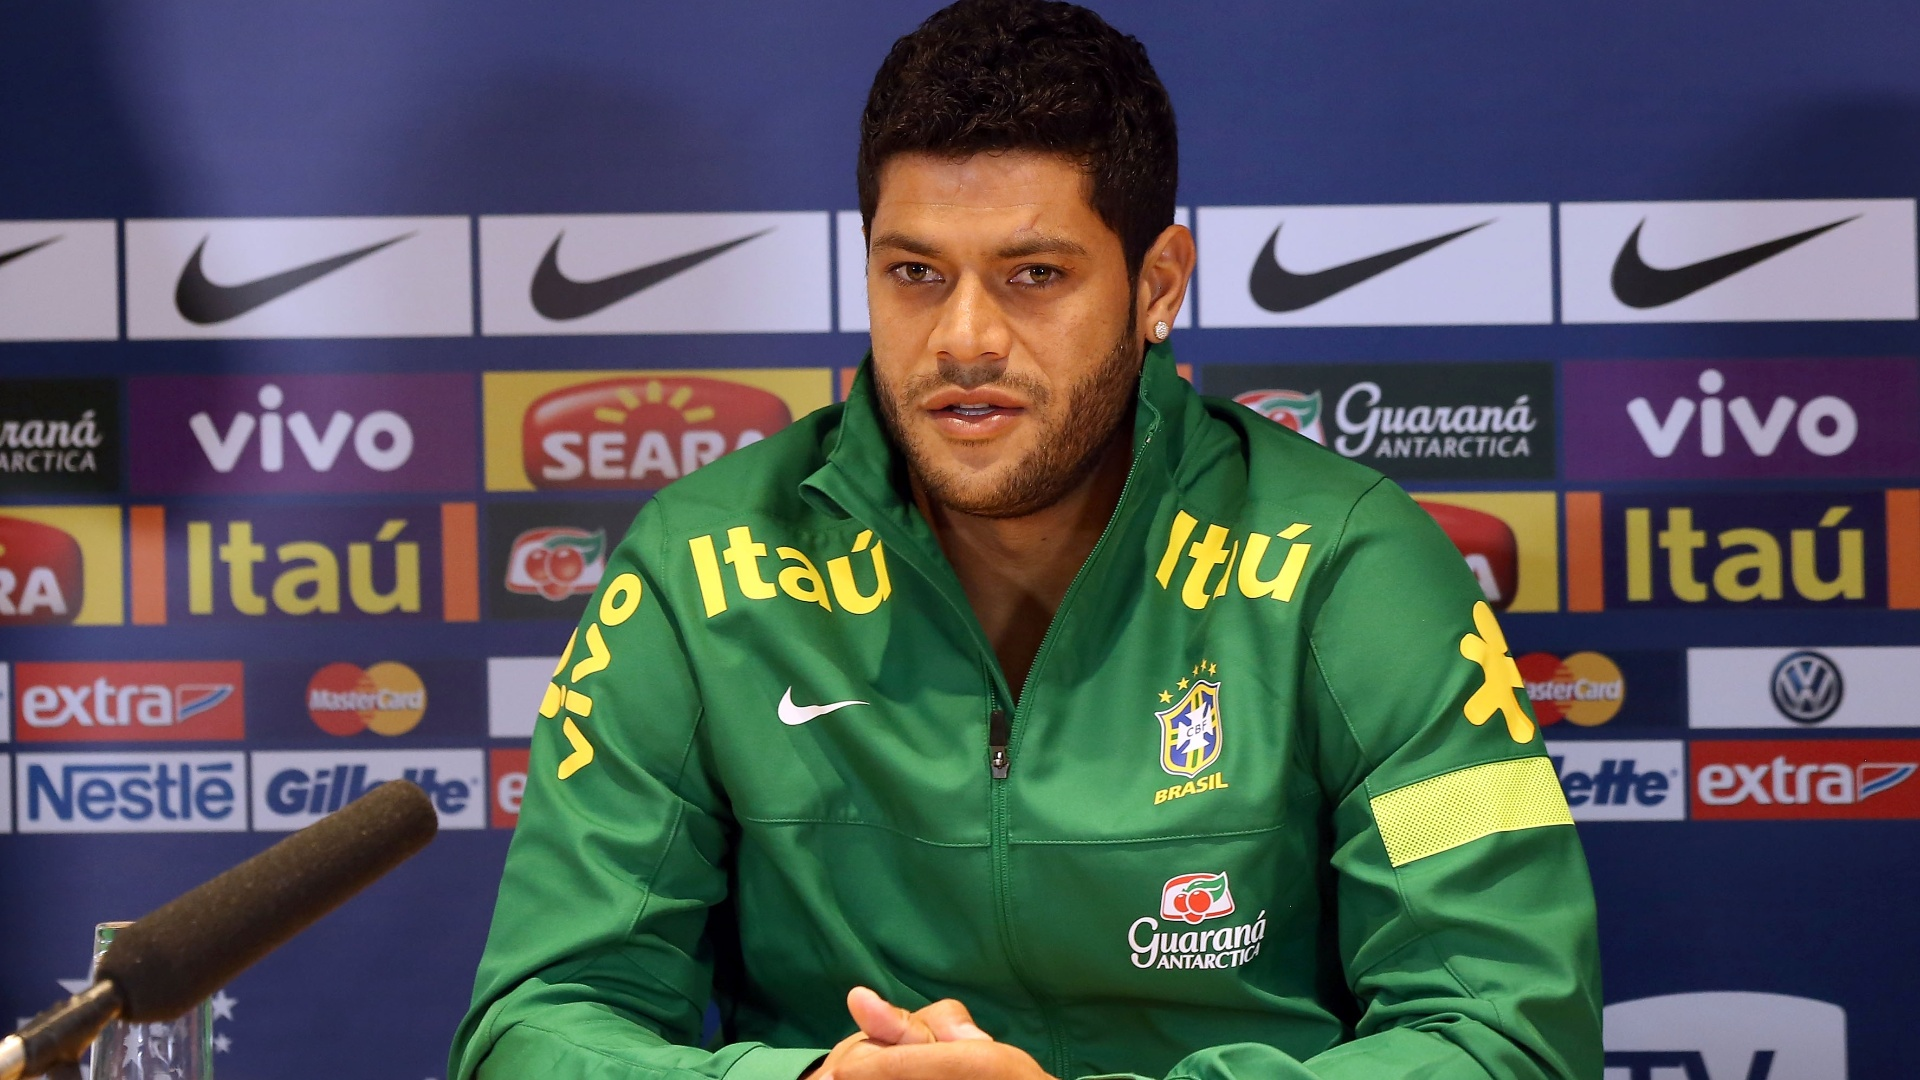 24.mar.2013 - Hulk participa de coletiva de imprensa aps o treino da seleo brasileira, em Londres